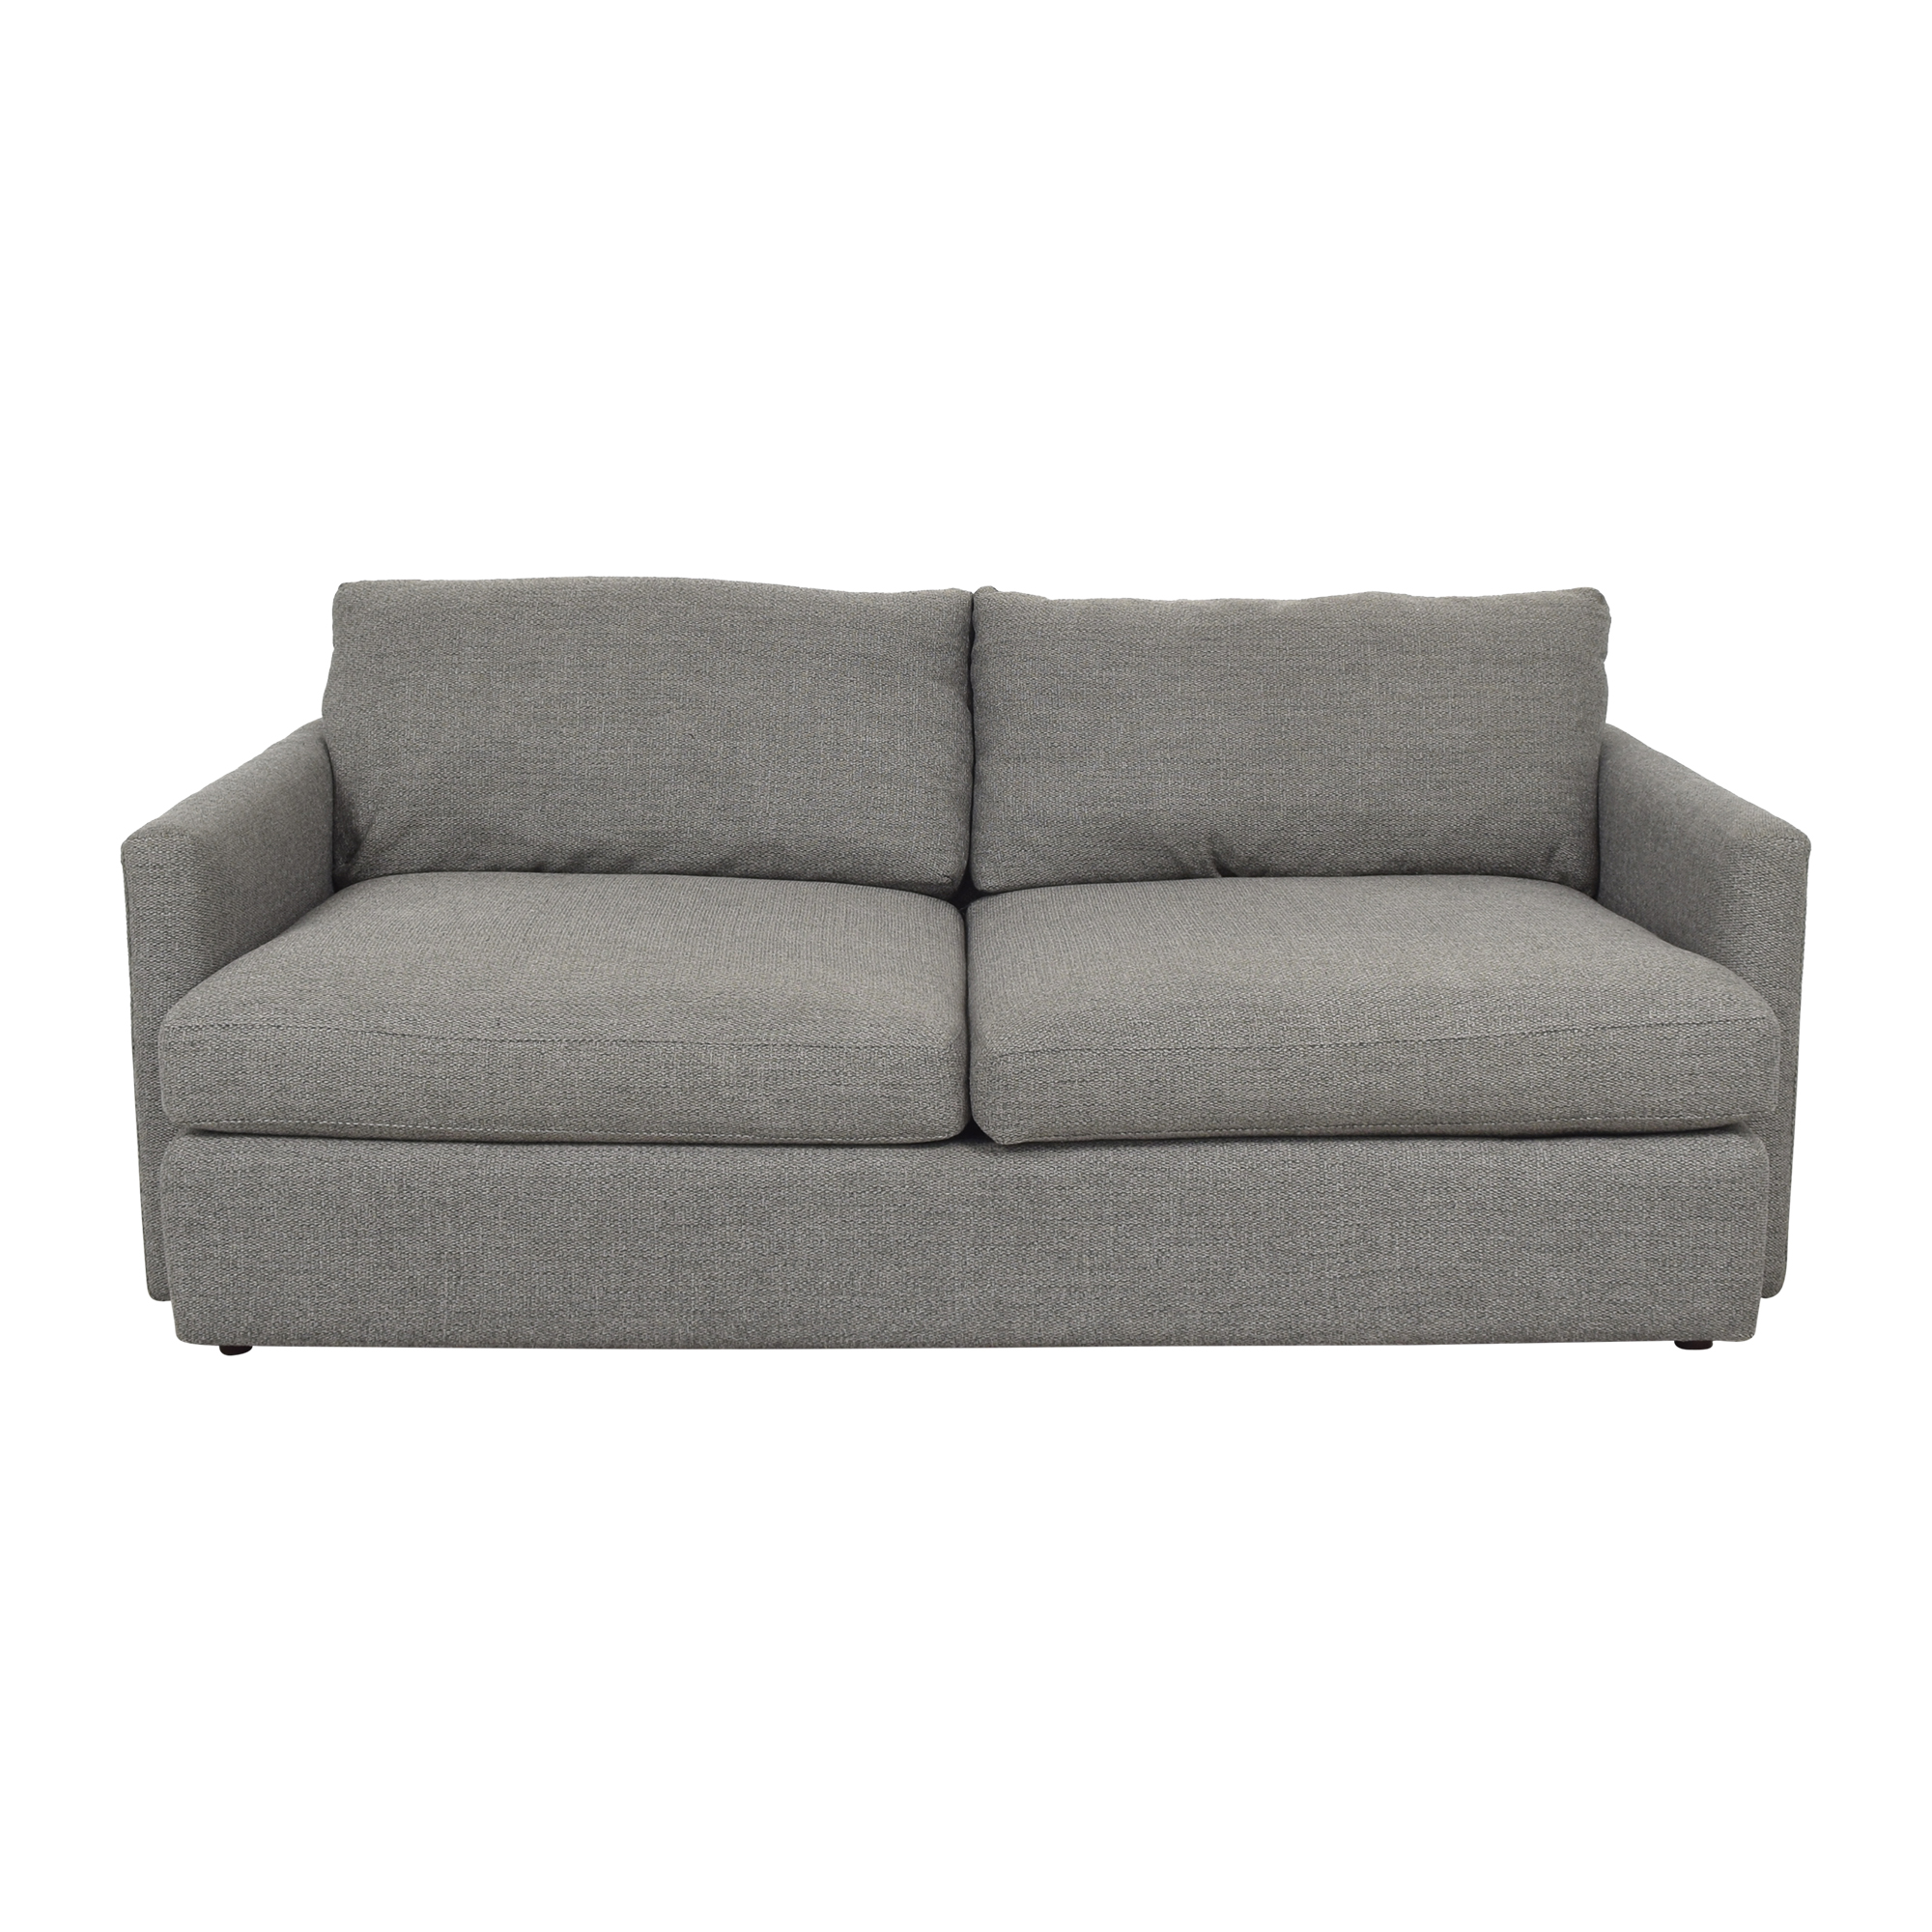 "Crate & Barrel Crate & Barrel Lounge II 83"" Crate & Barrel Sofa coupon"